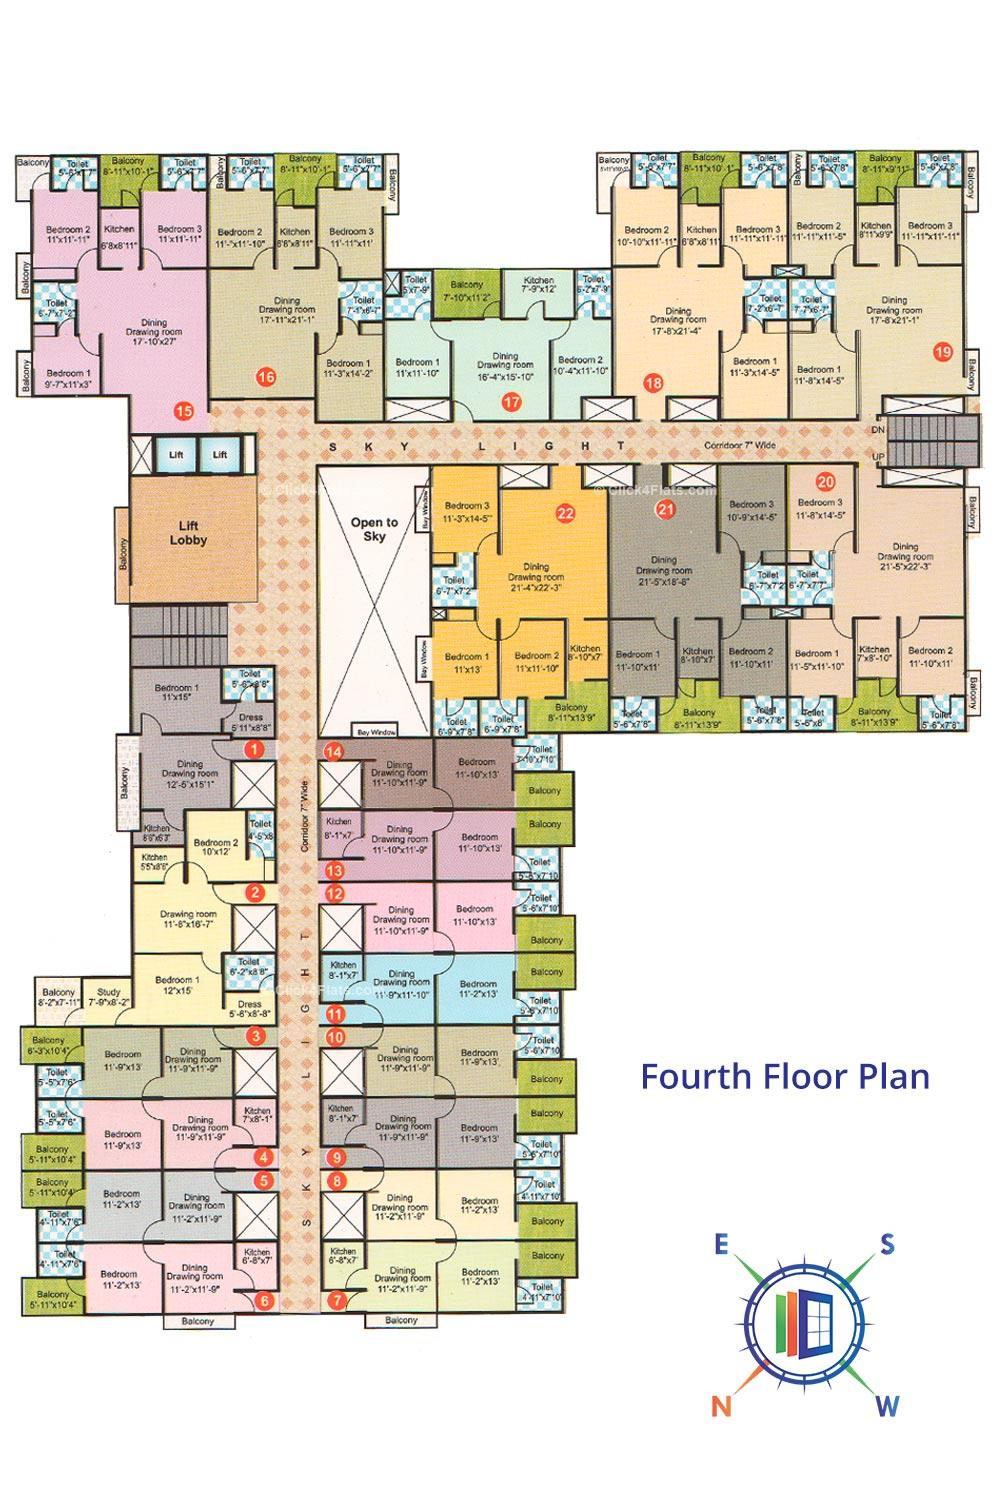 The Tulip Enclave Fourth Floor Plan